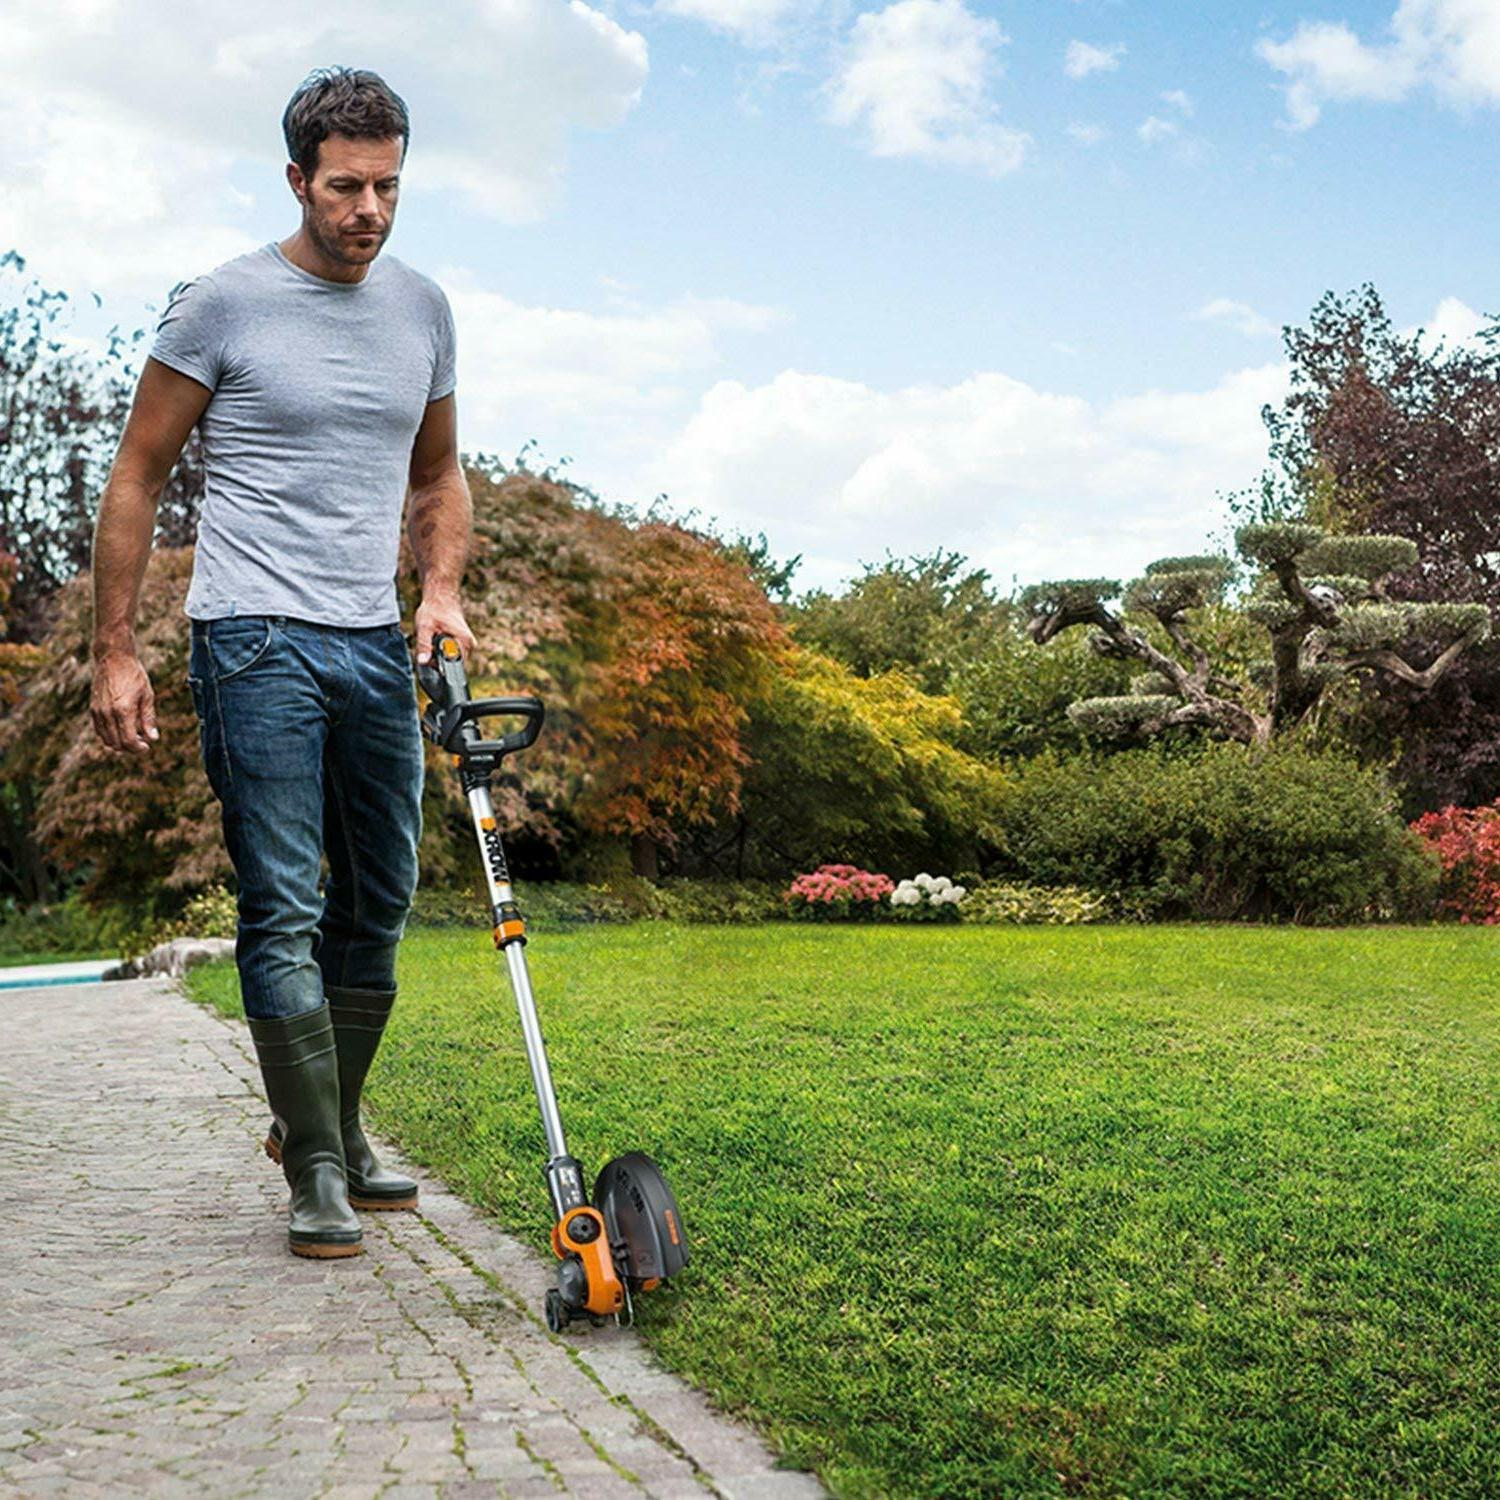 20V Electric Trimmer Lawn Wacker Edger Yard